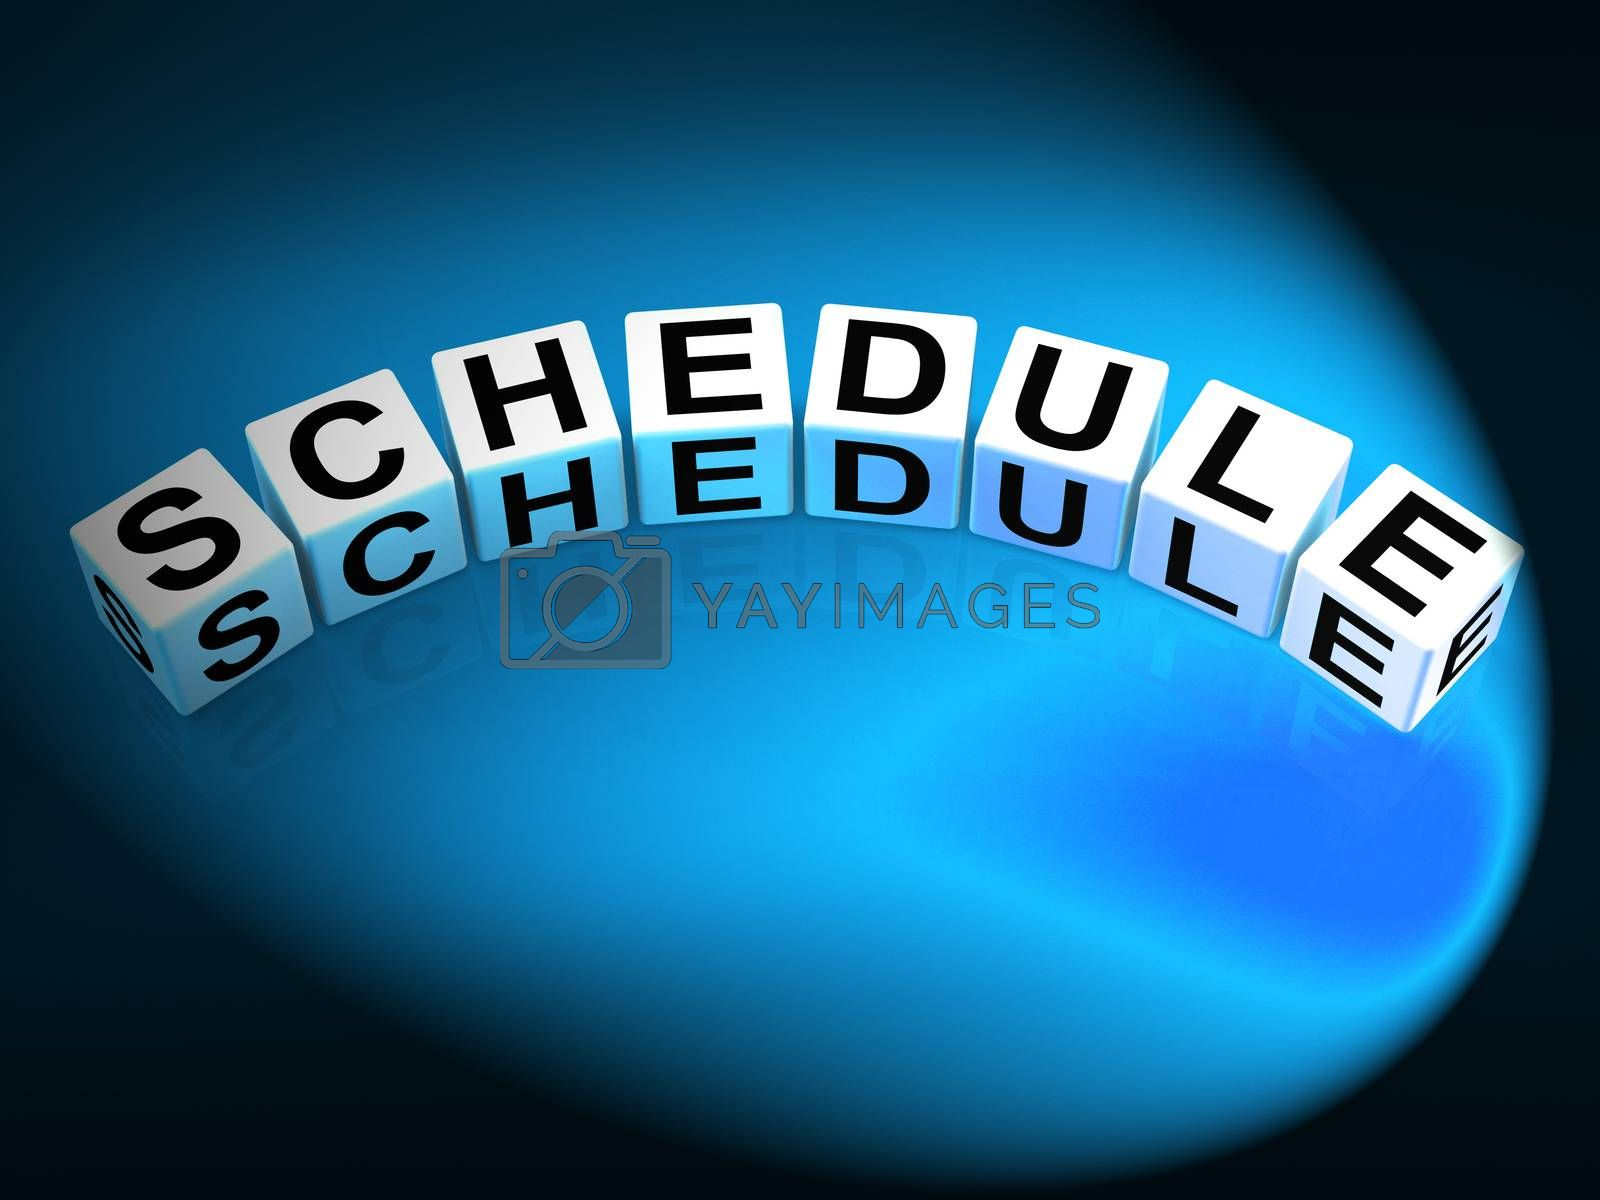 Schedule Dice Mean Program Itinerary and Organize Agenda by stuartmiles